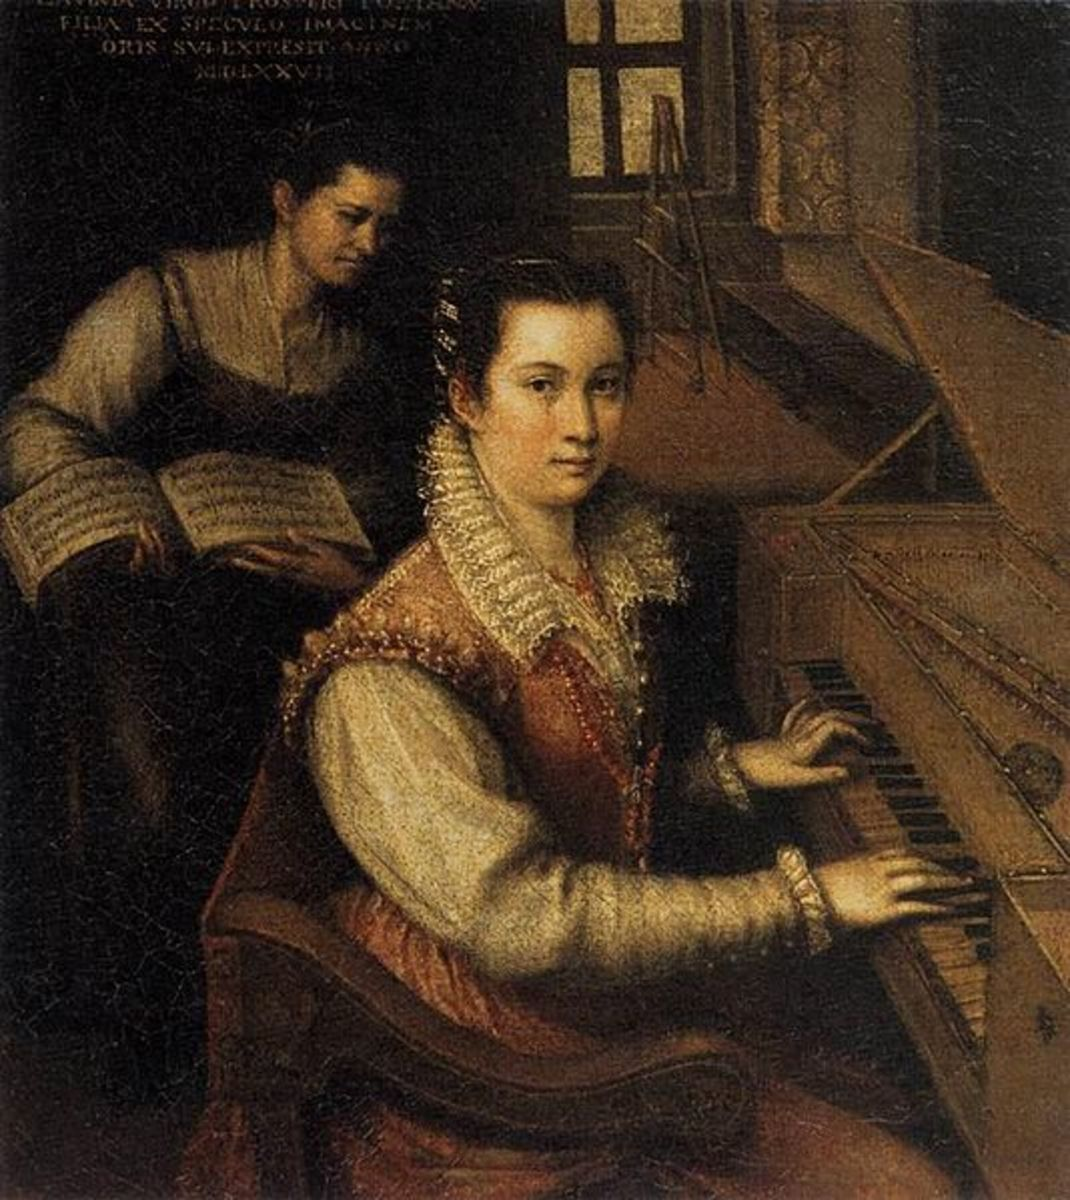 Self-Portrait at the Spinet (1577) is in the public domain in the United States and those countries with a copyright term of life of the author plus 100 years or less.